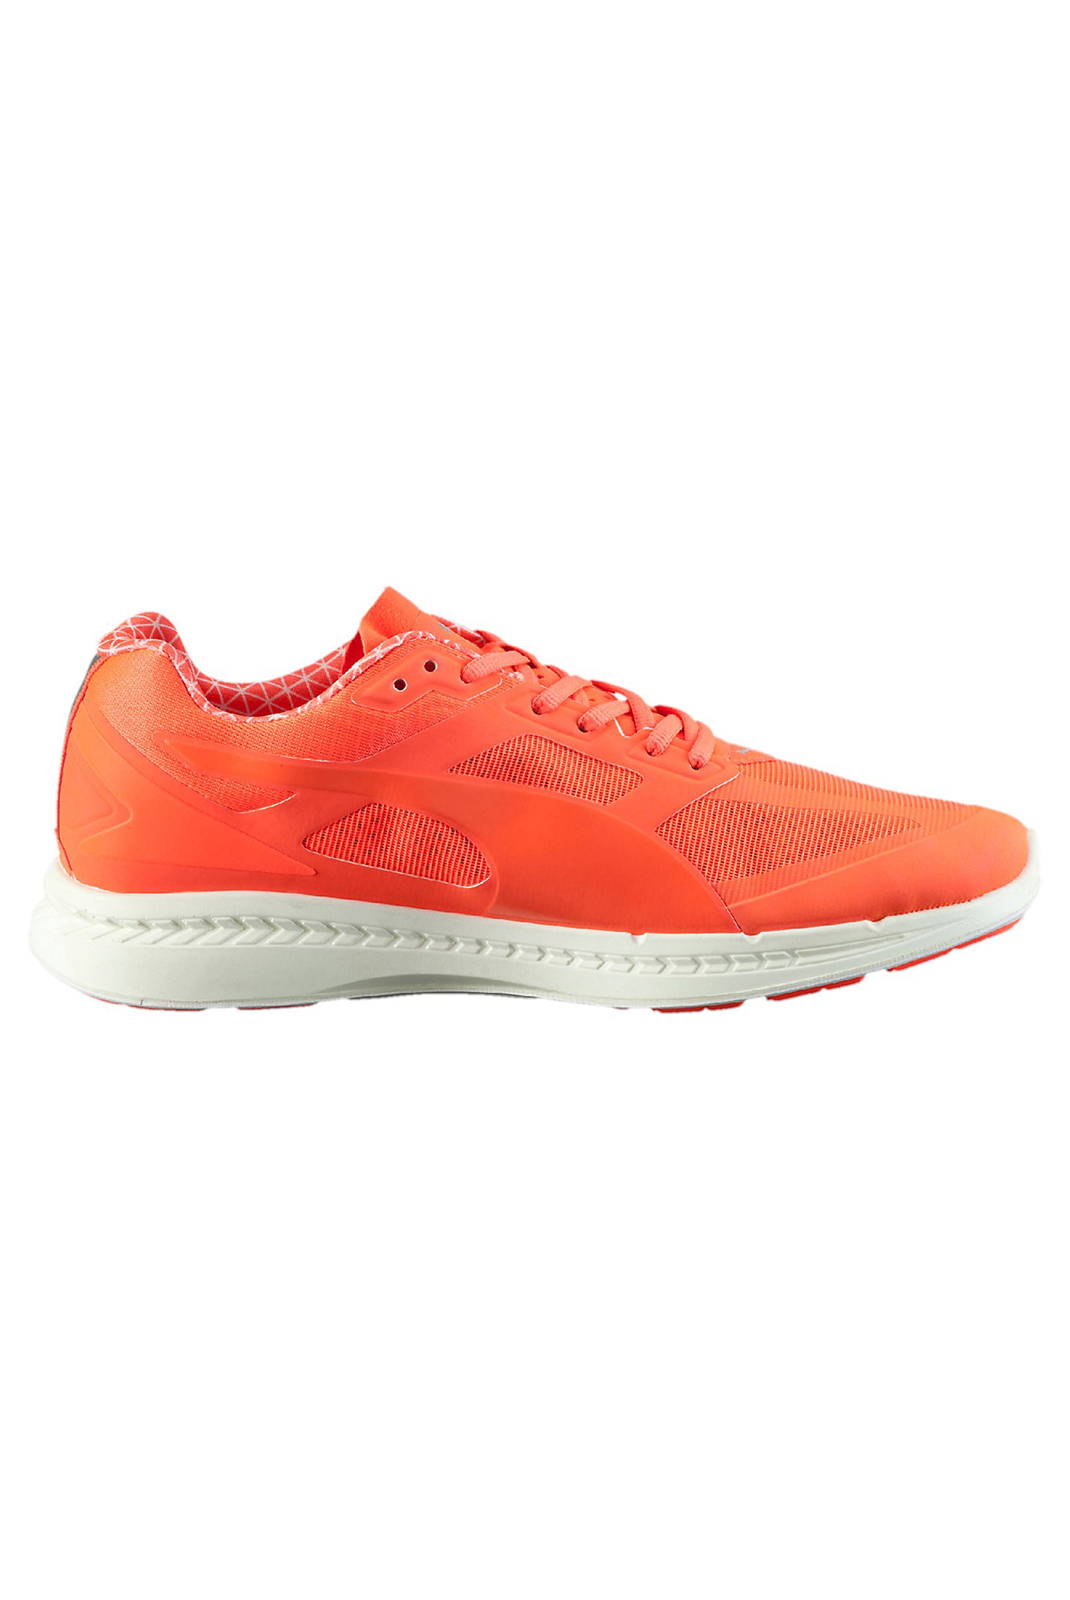 Baskets / Sport  Puma 188112 01 IGNITE CORAIL WHITE